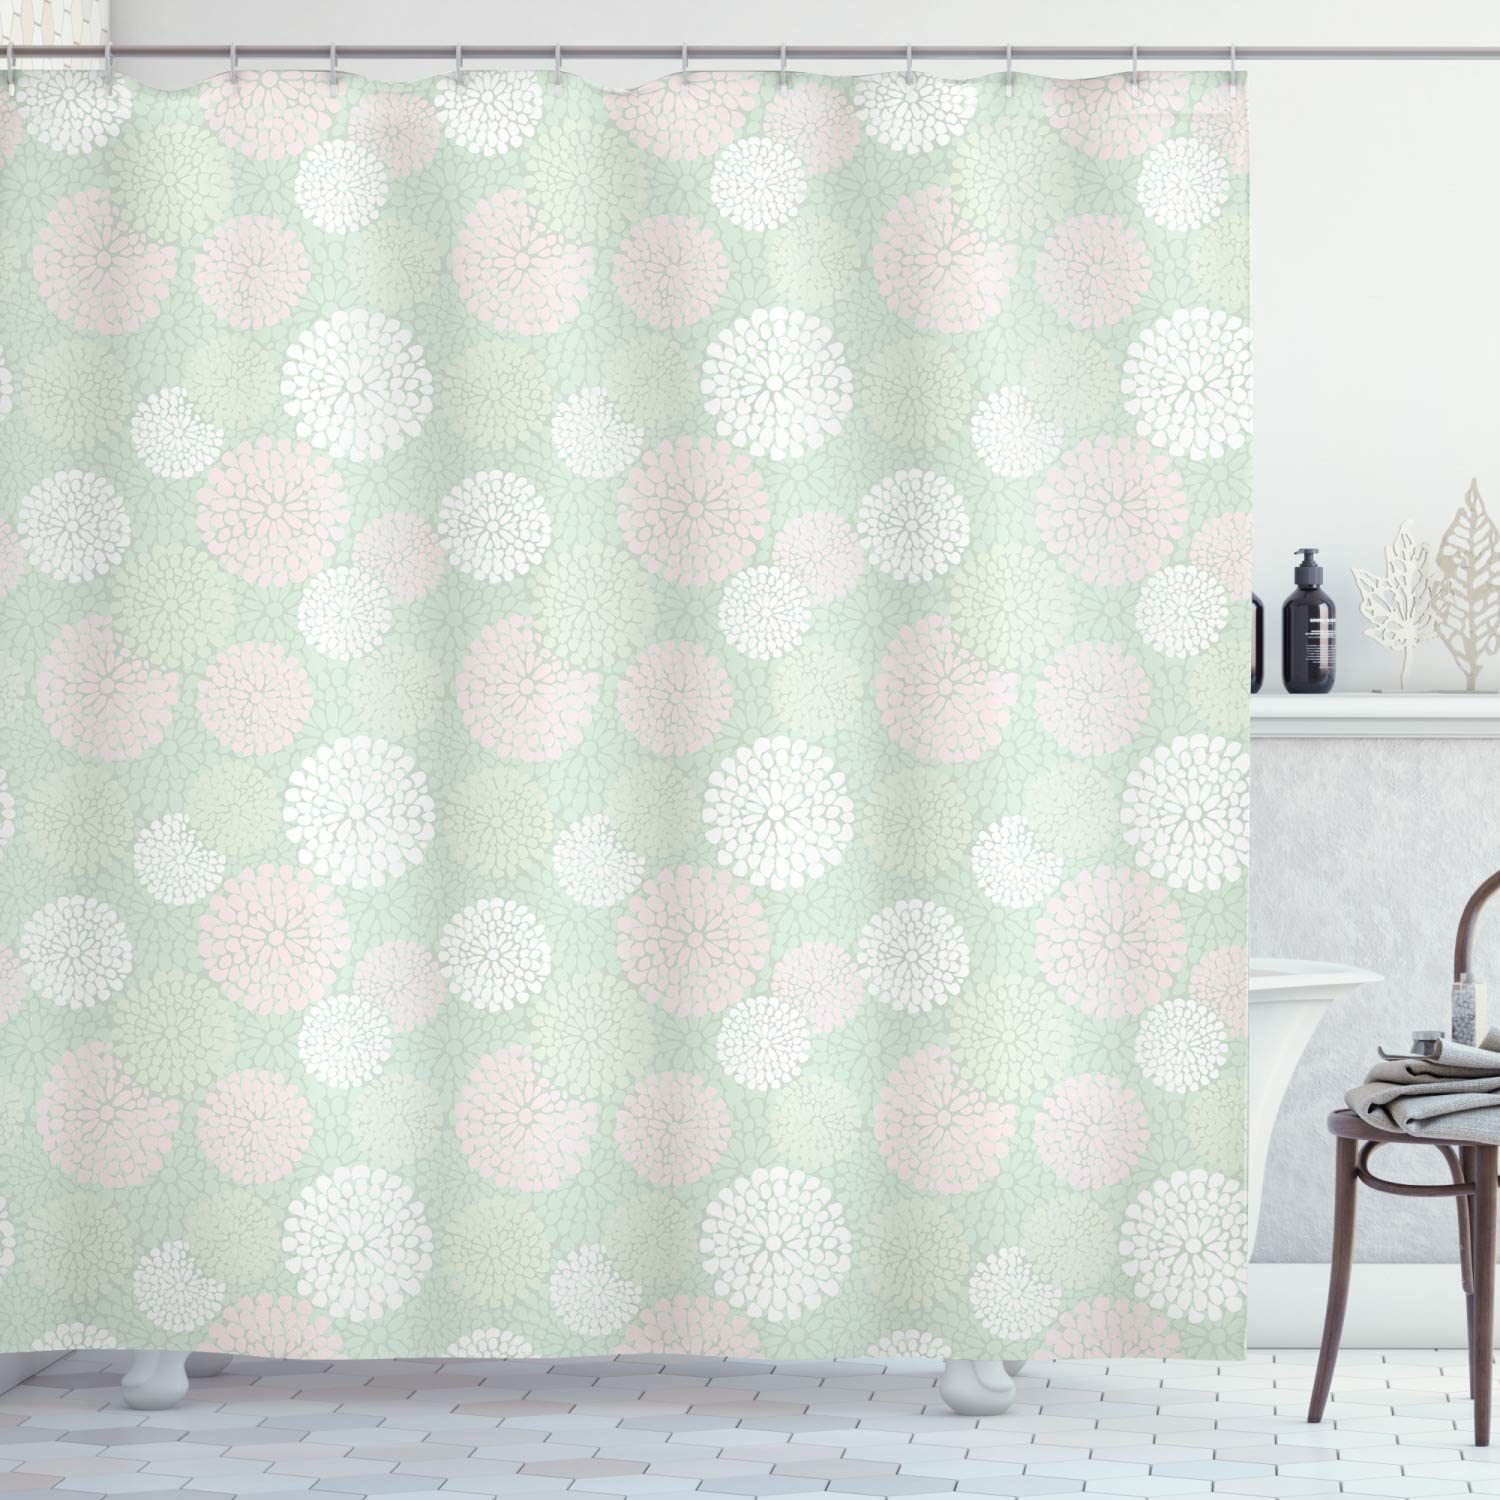 Ambesonne Mint Shower Curtain, Dahlia Flowers in Pastel Tones Spring Blooms Theme Floral Pattern, Cloth Fabric Bathroom Decor Set with Hooks, 70